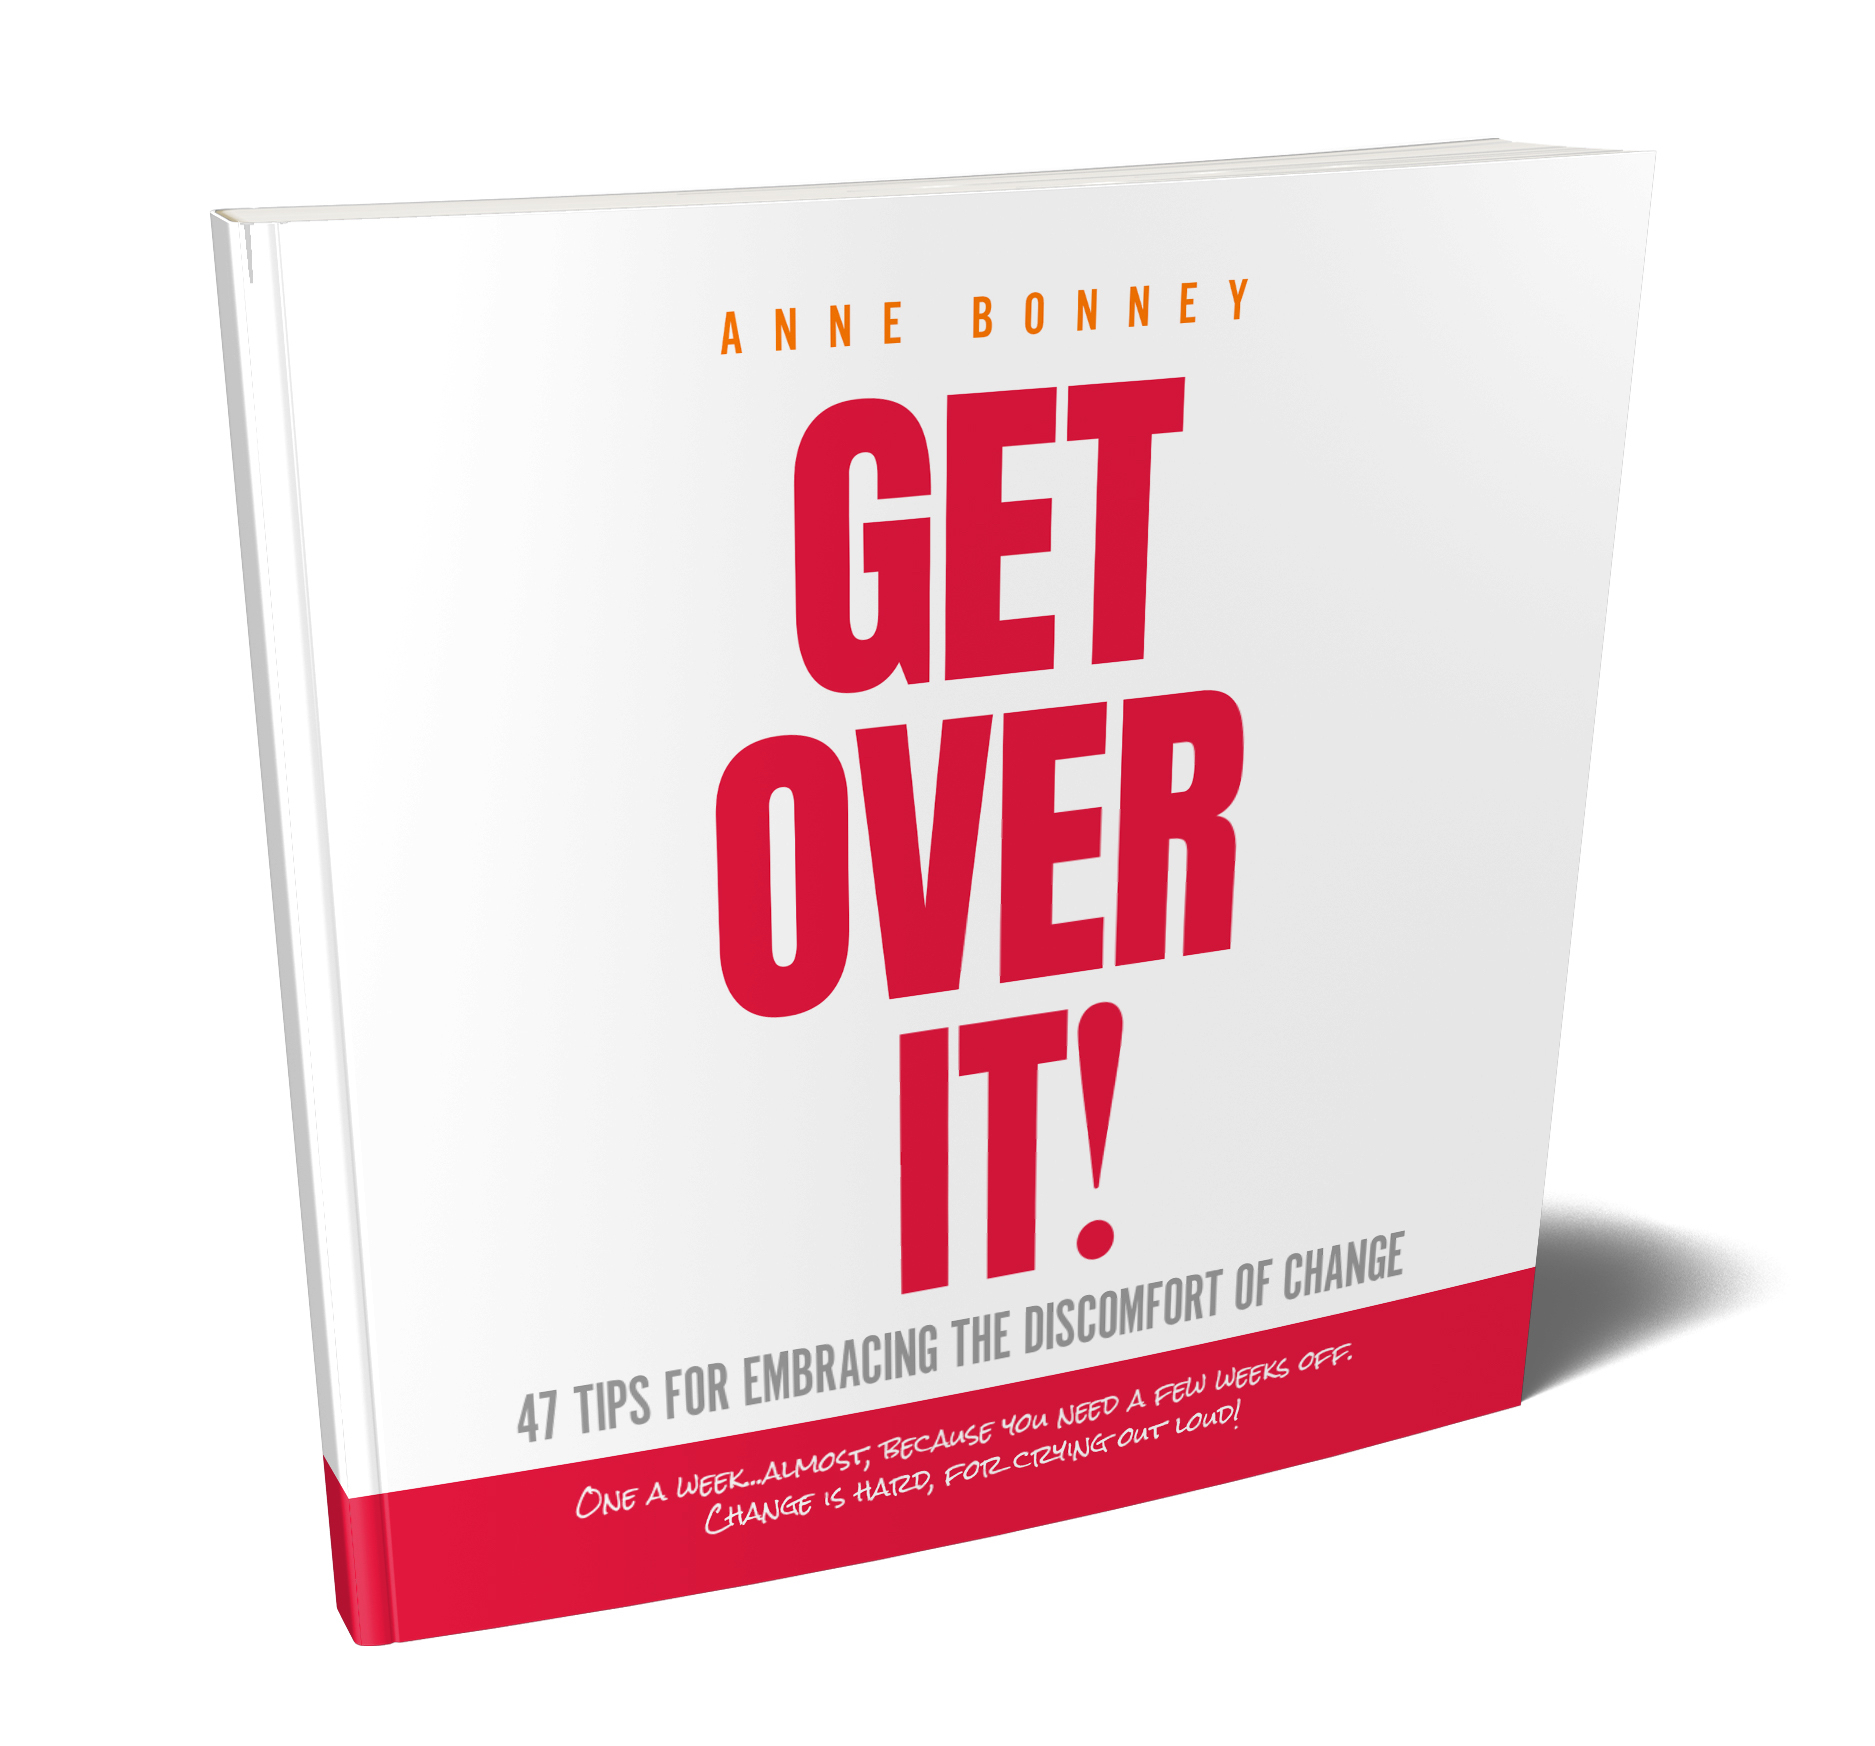 Anne-Bonney-Get-Over-It-Book-Cover-3D-1